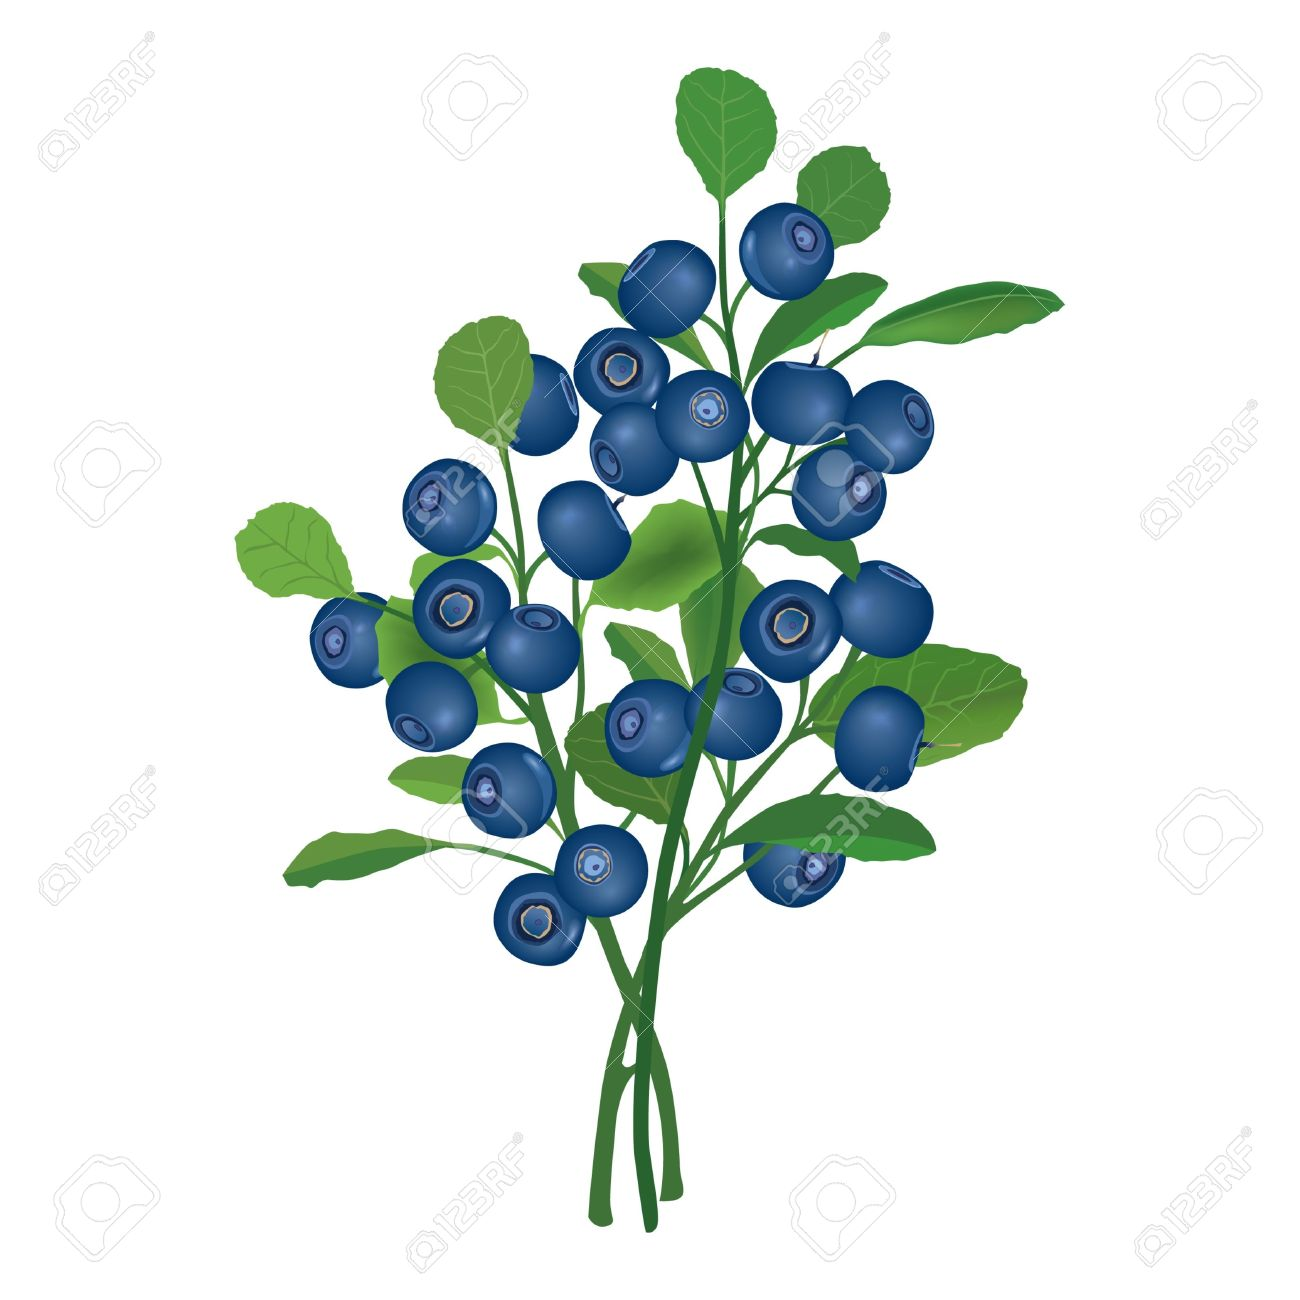 Drawn rose bush two Bush Clipart Blueberry Berry cliparts